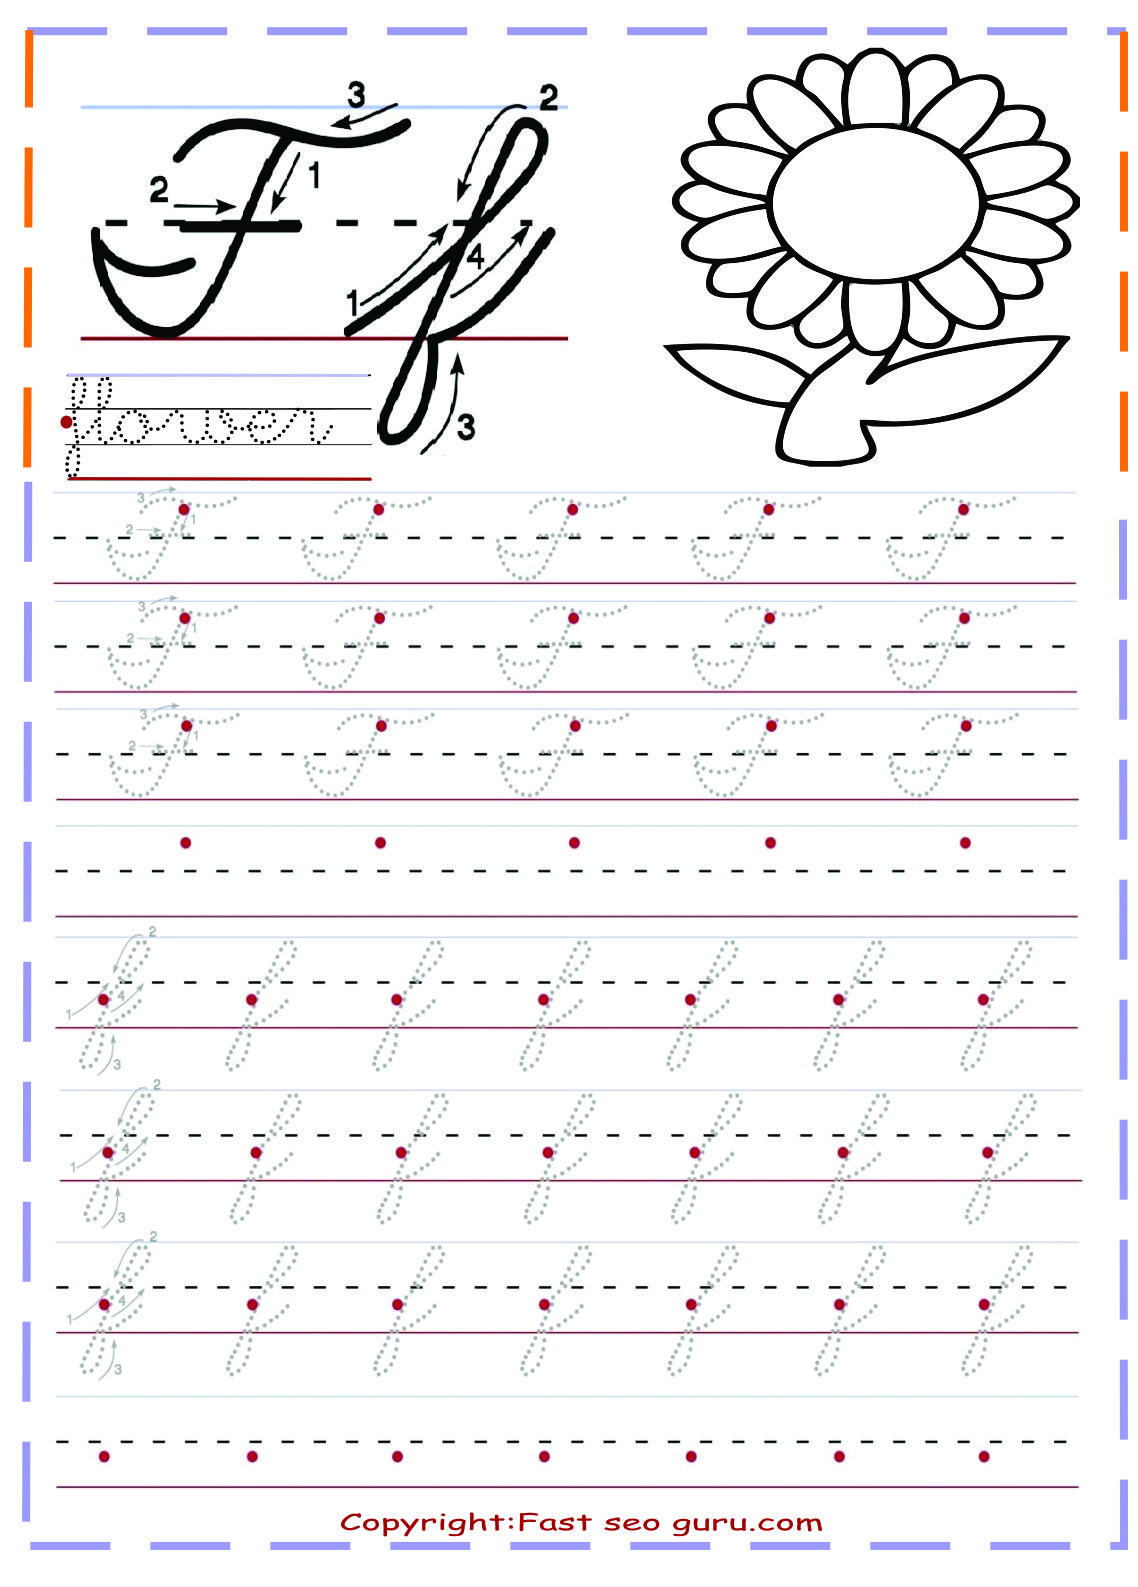 Cursive Handwriting Tracing Worksheets For Practice Letter